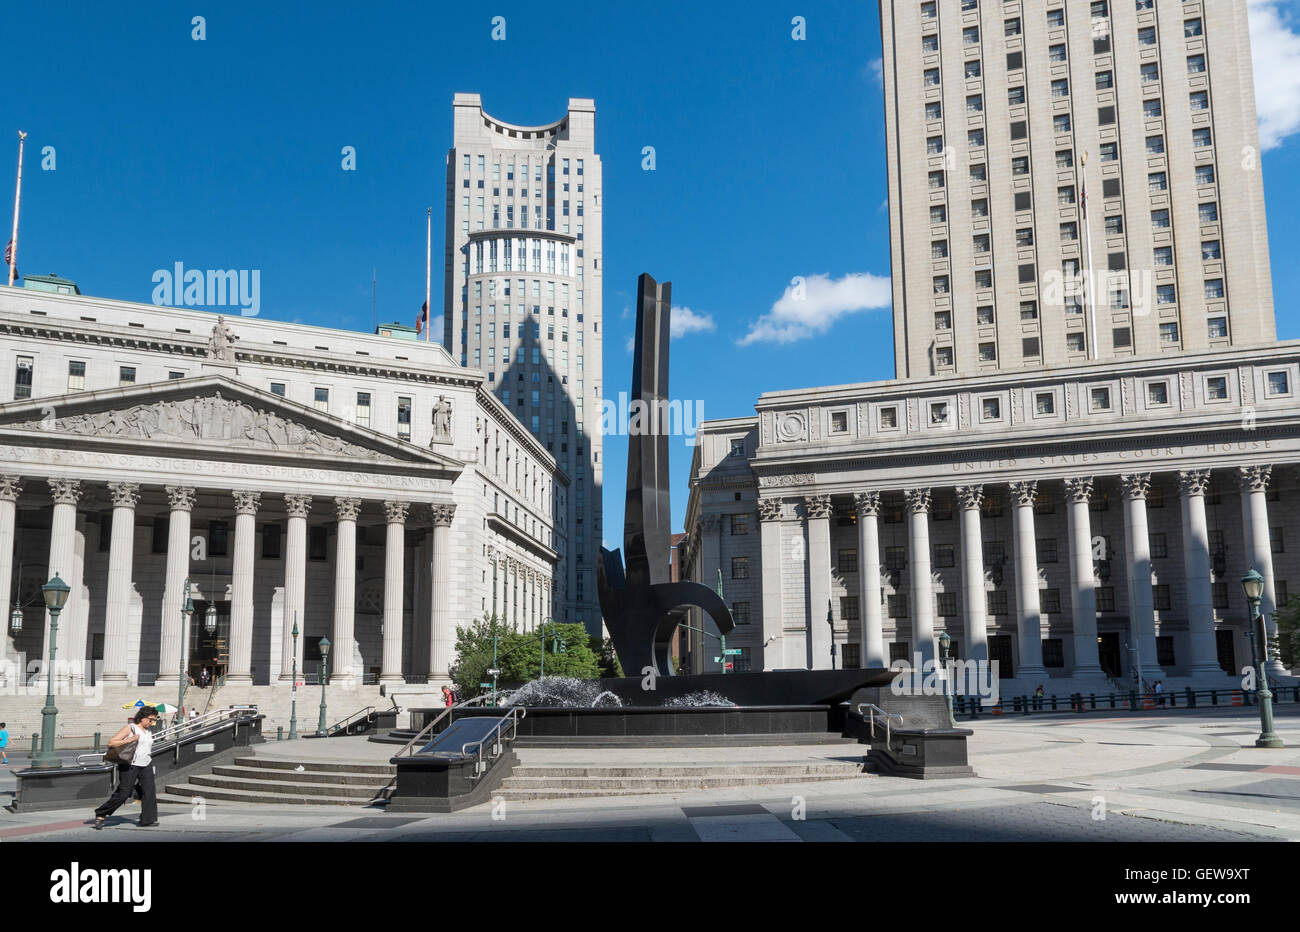 View of Foley Square, New York, with sculpture, Supreme Court Building, and United States Courthouse - Stock Image